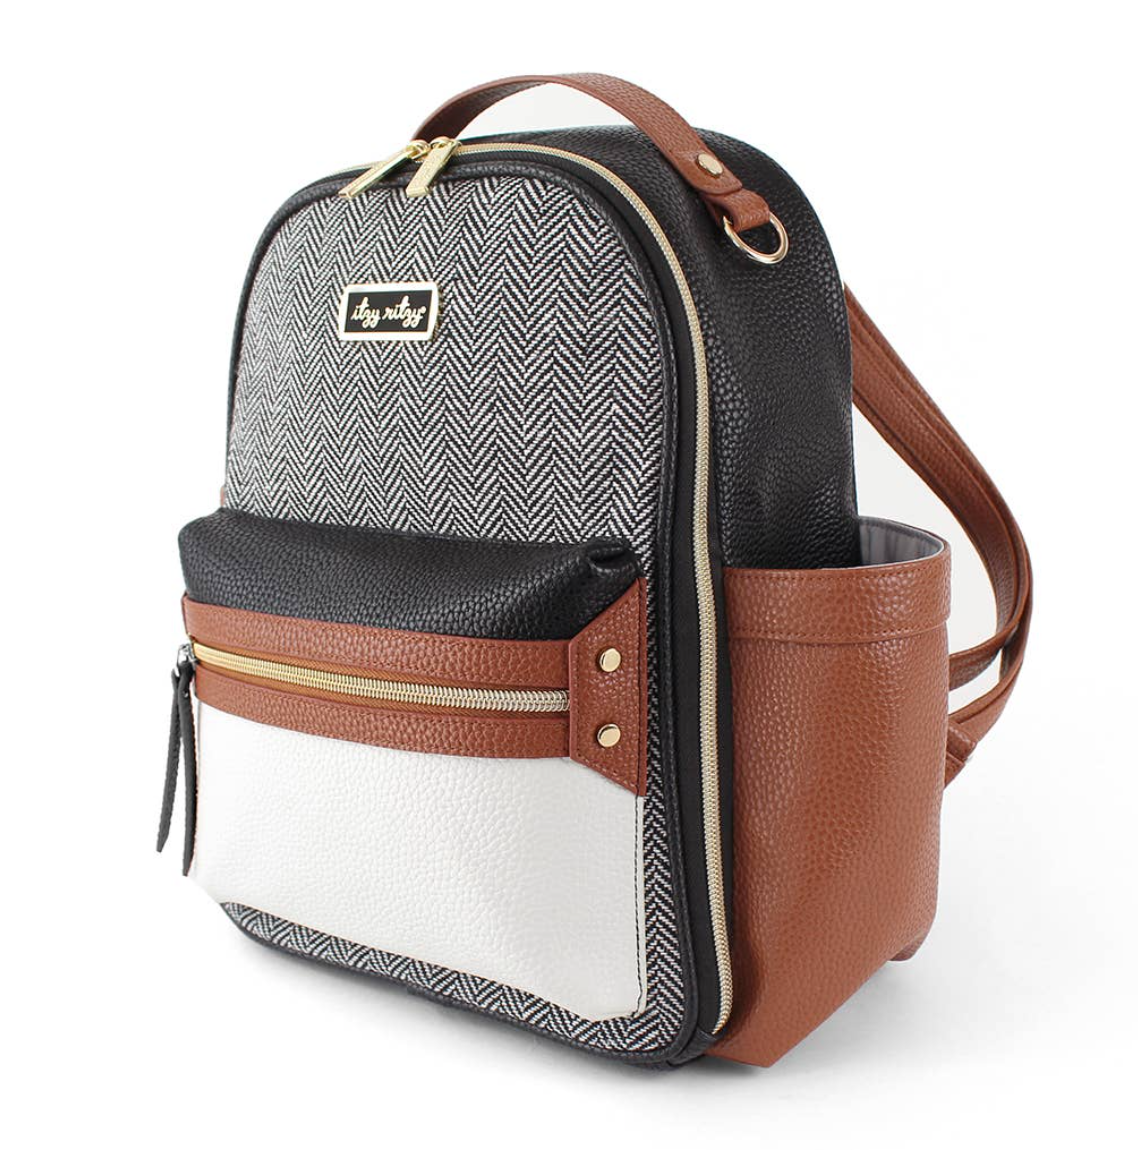 Itzy Mini™ Diaper Bag Backpack - Coffee and Cream